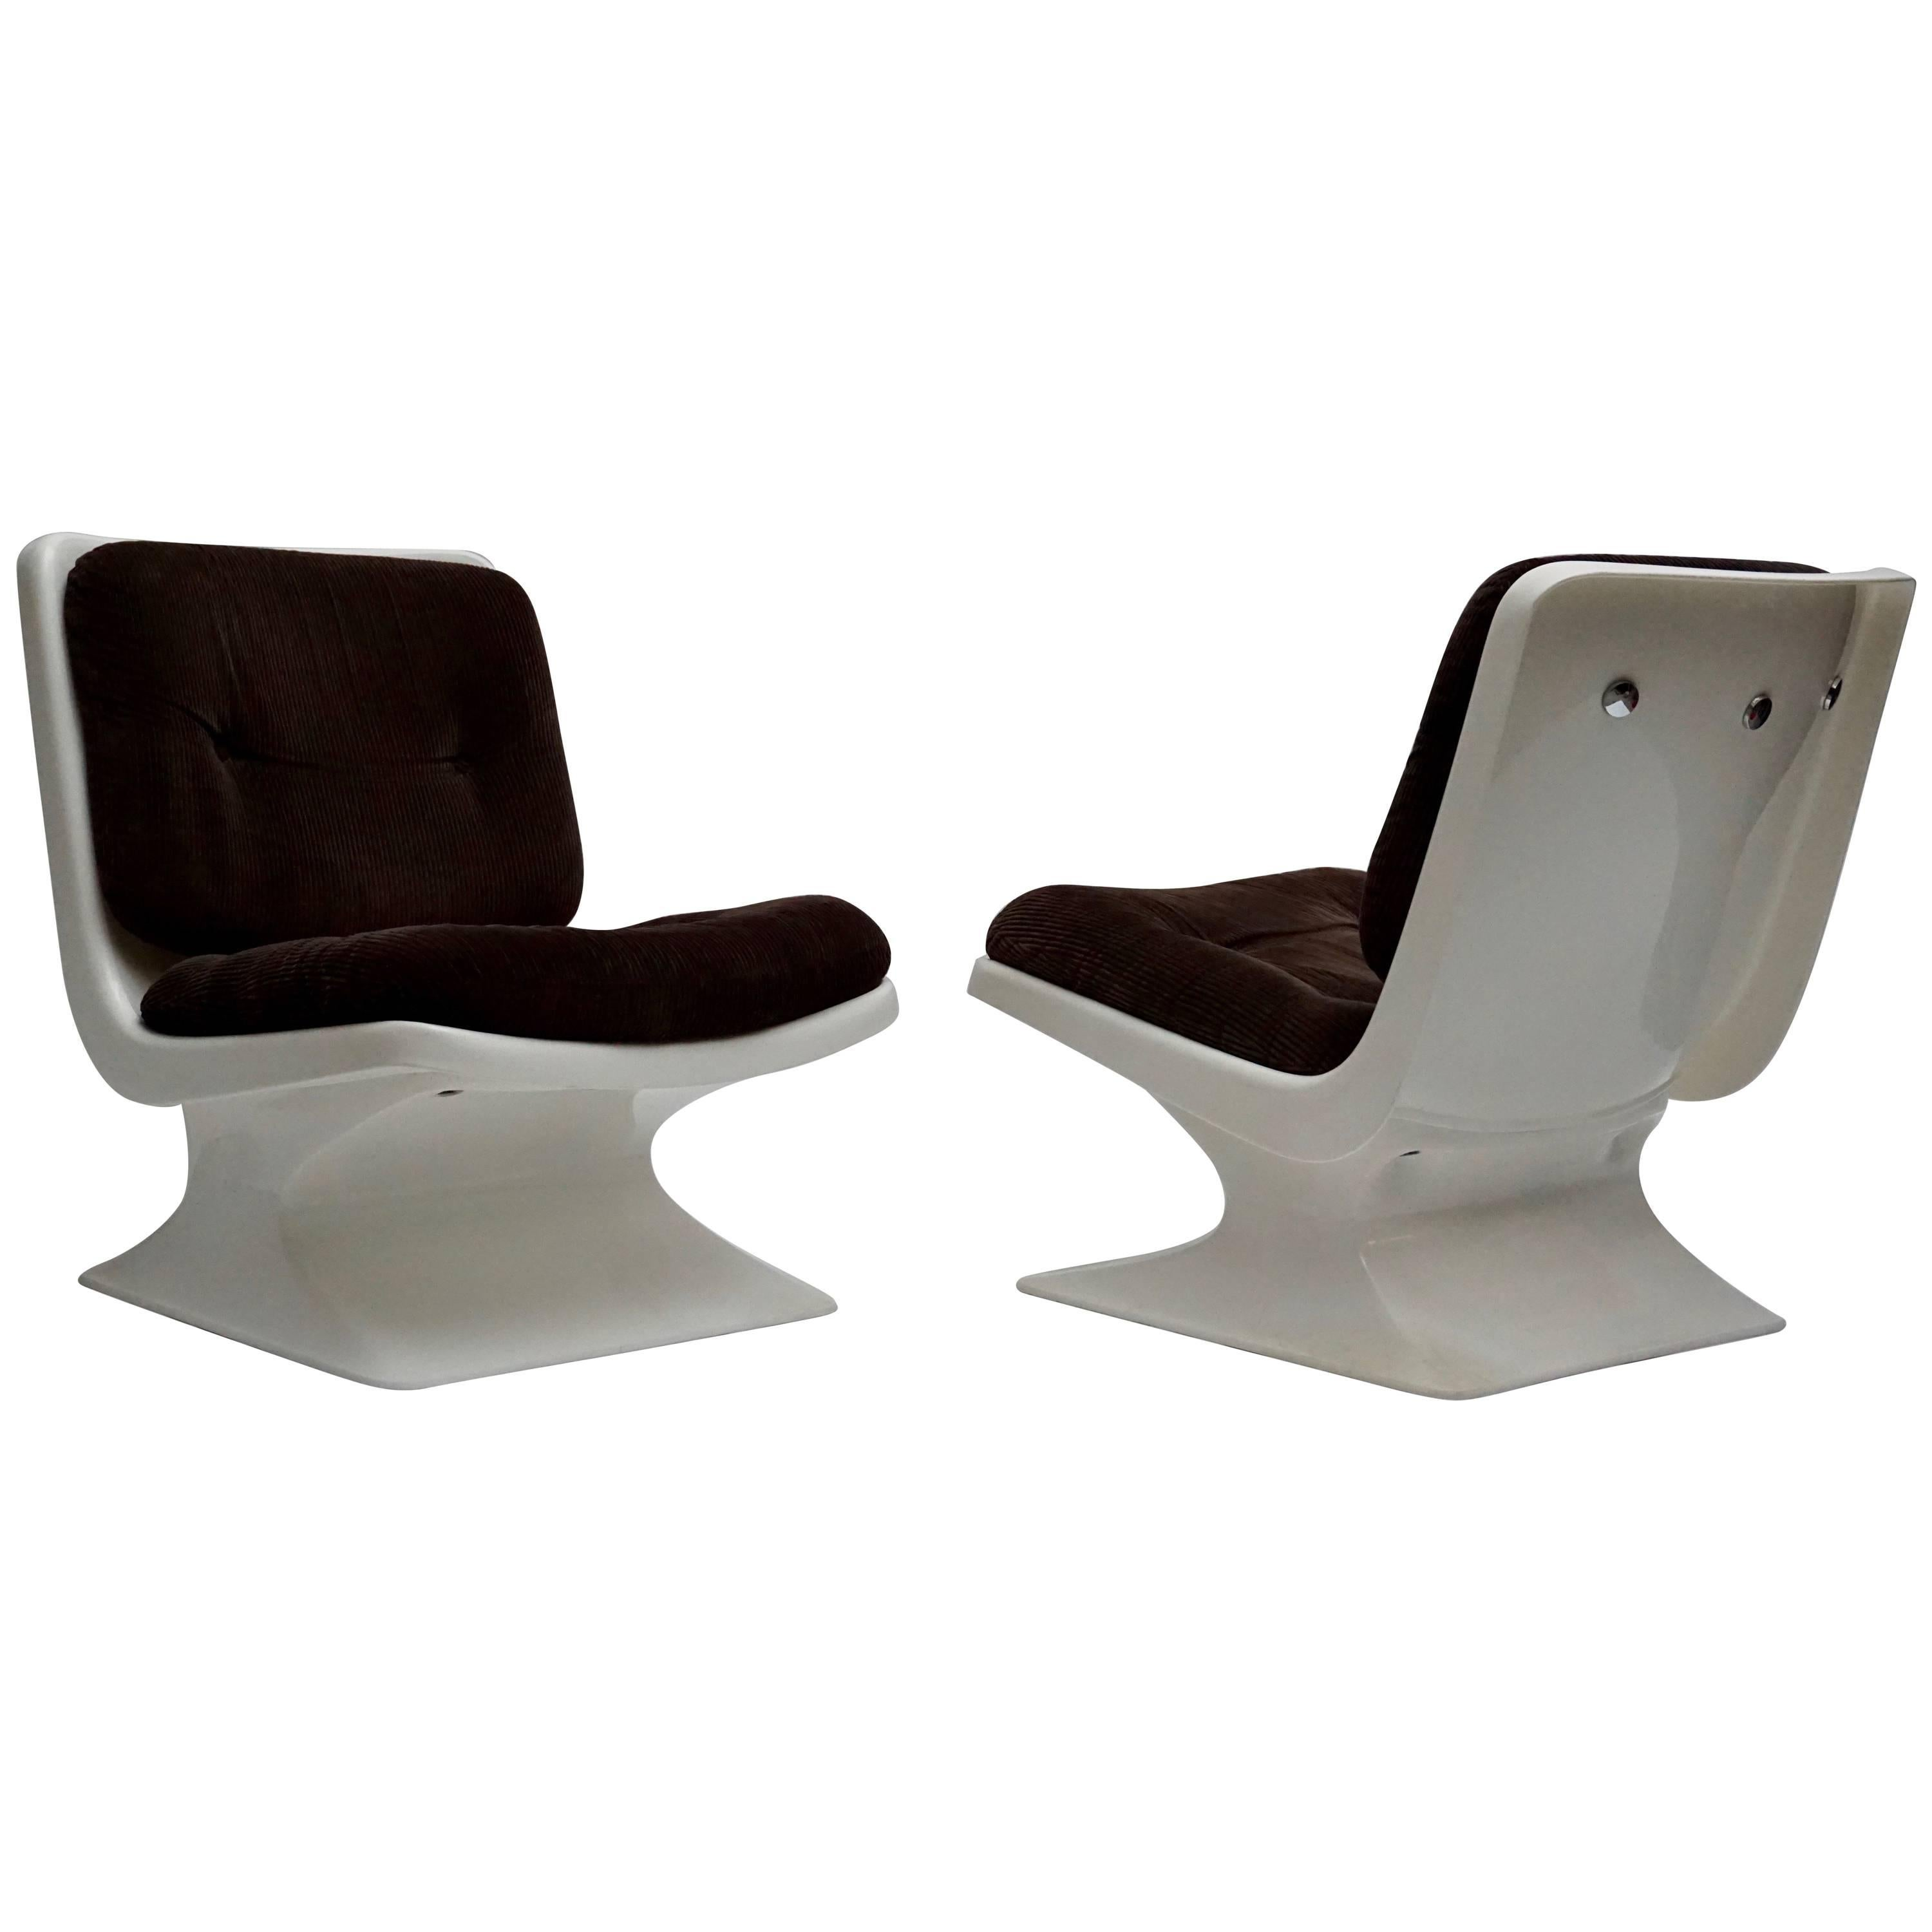 Albert Jacob Lounge Chairs for Grosfillex, 1970